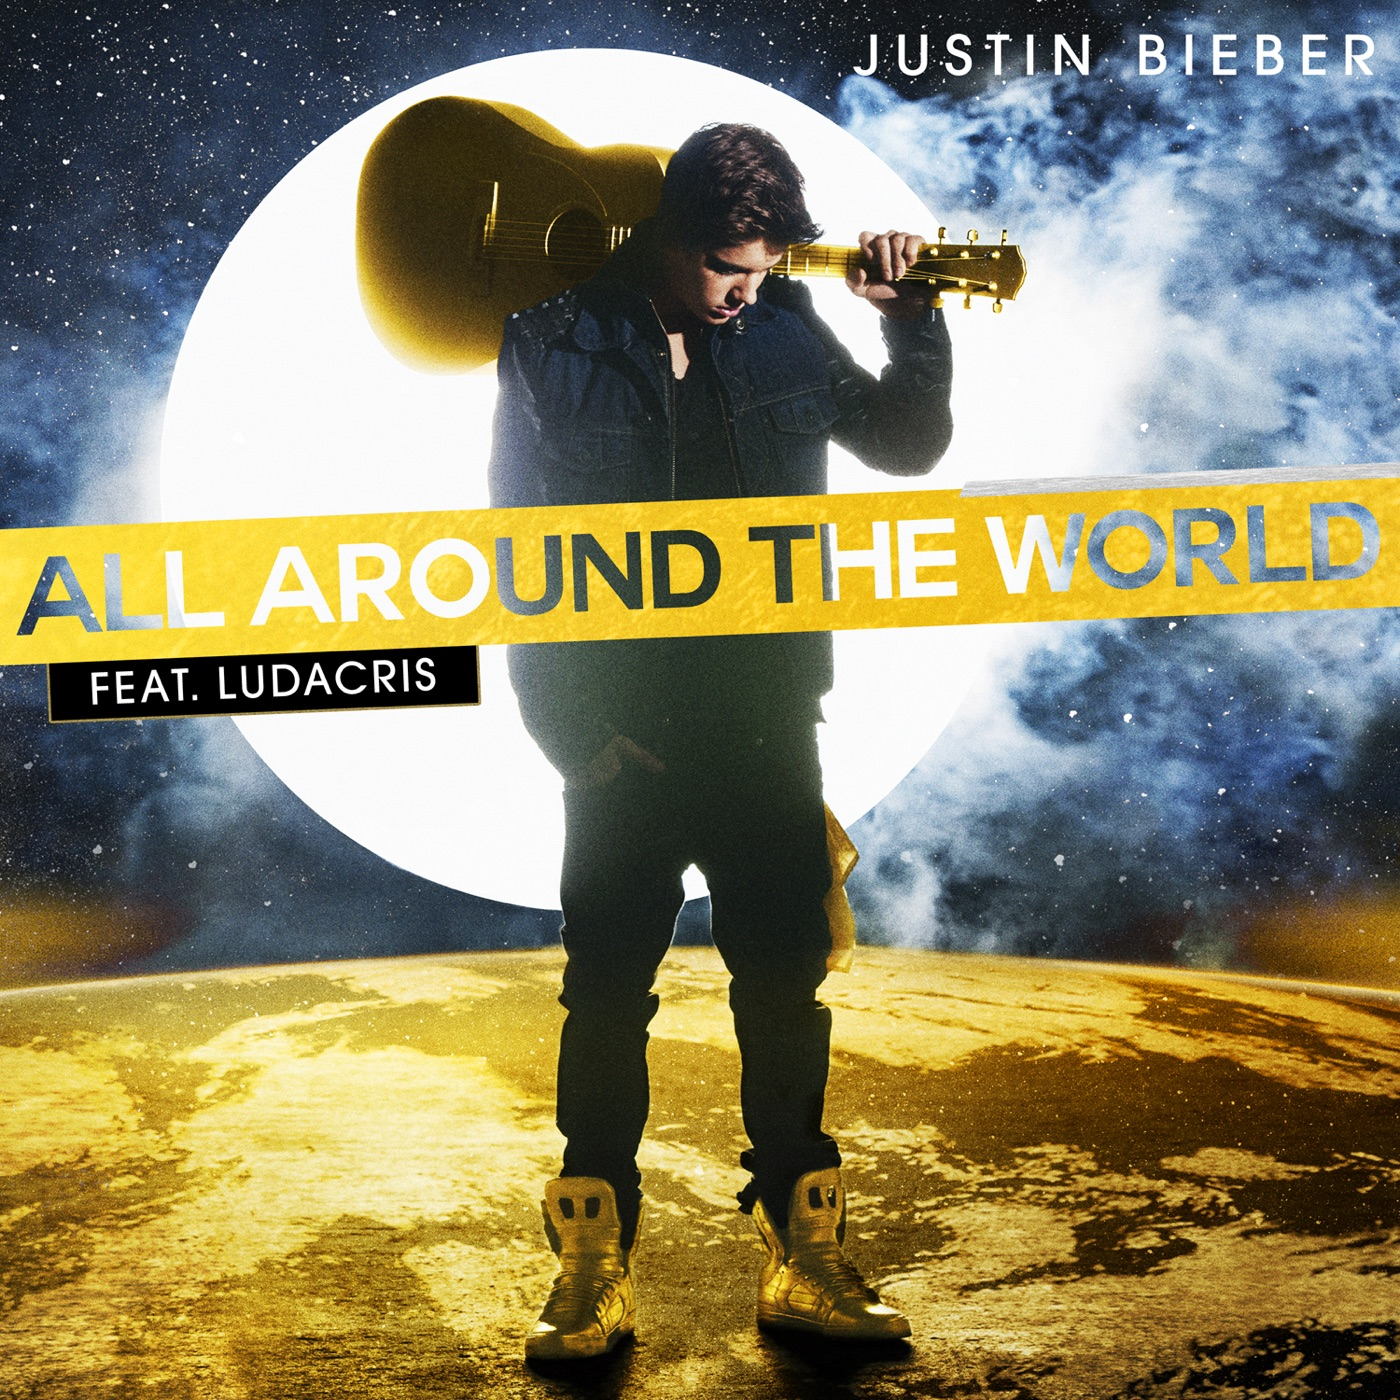 Justin Bieber - All Around the World (feat. Ludacris) - Single Cover